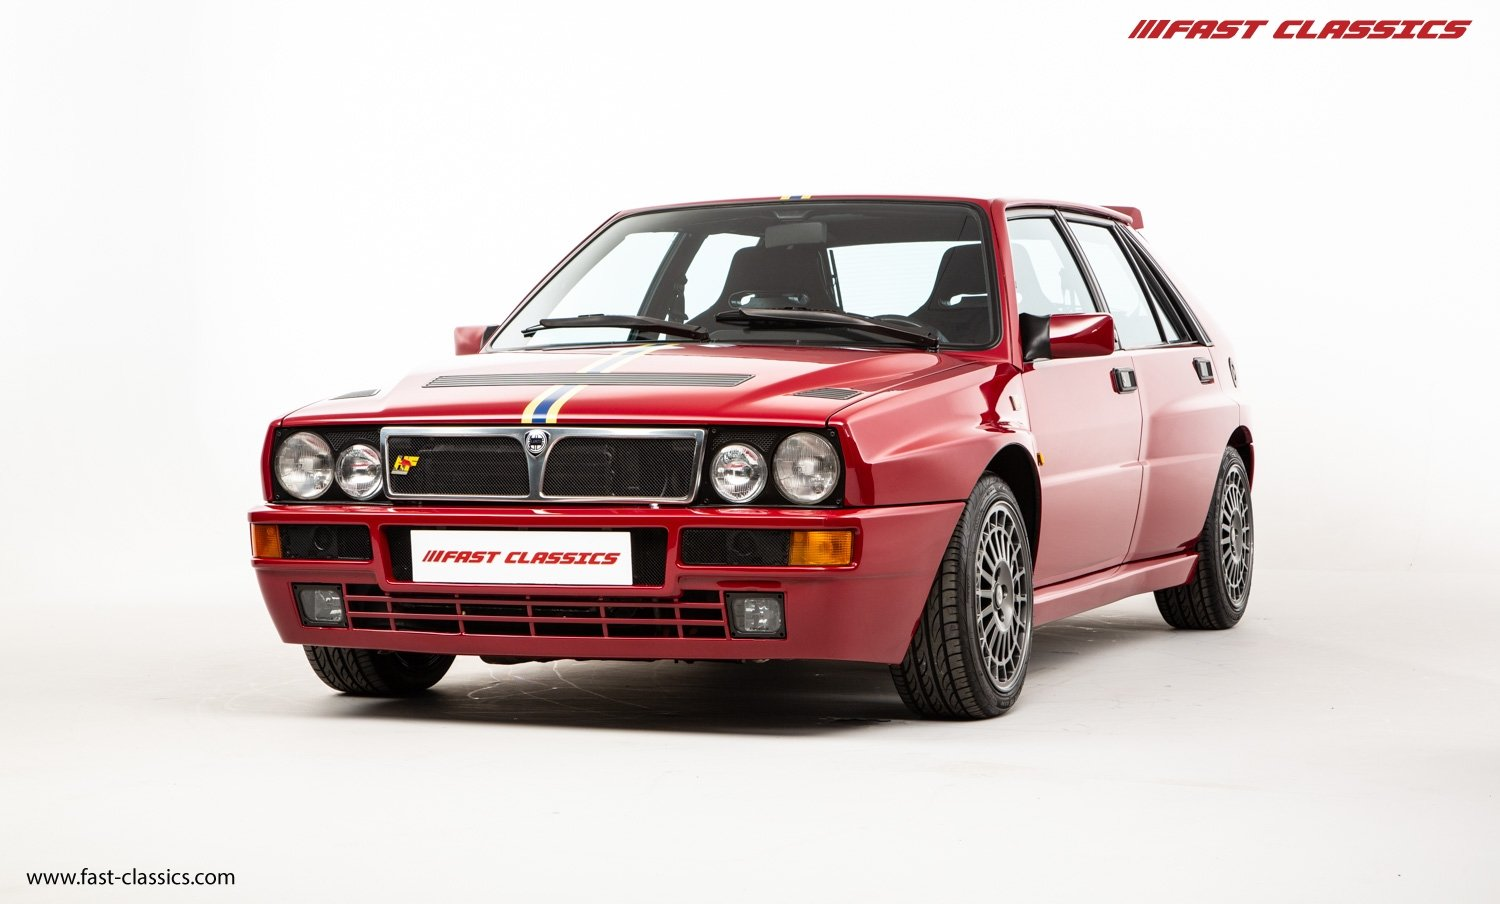 1995 LANCIA DELTA EDIZIONE FINALE // 1 OF 250 // 19K MILES  For Sale (picture 2 of 24)